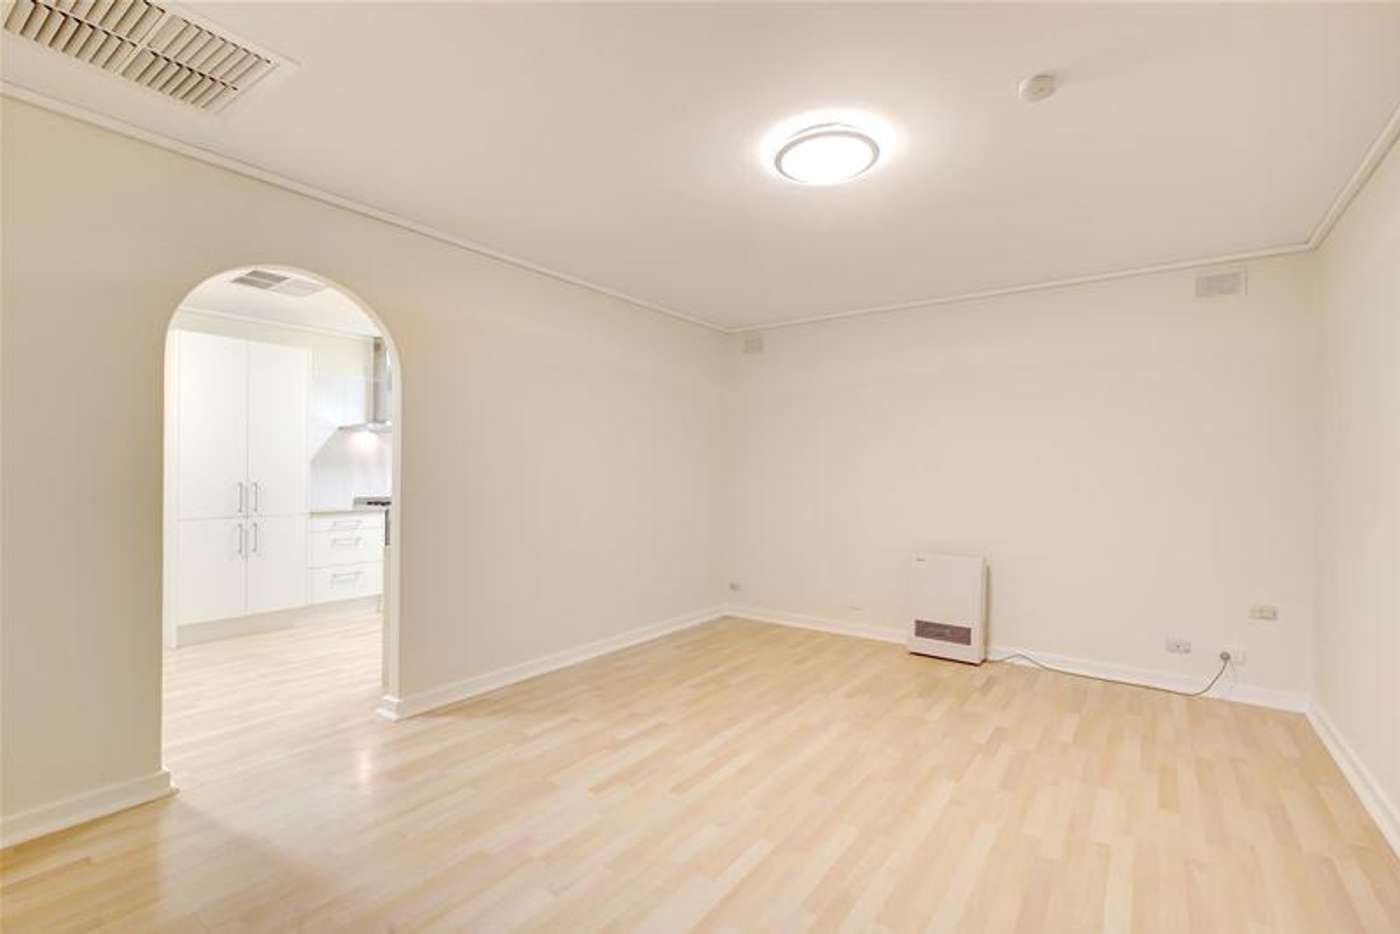 Fifth view of Homely unit listing, 4/10 Dunkley Avenue, Firle SA 5070